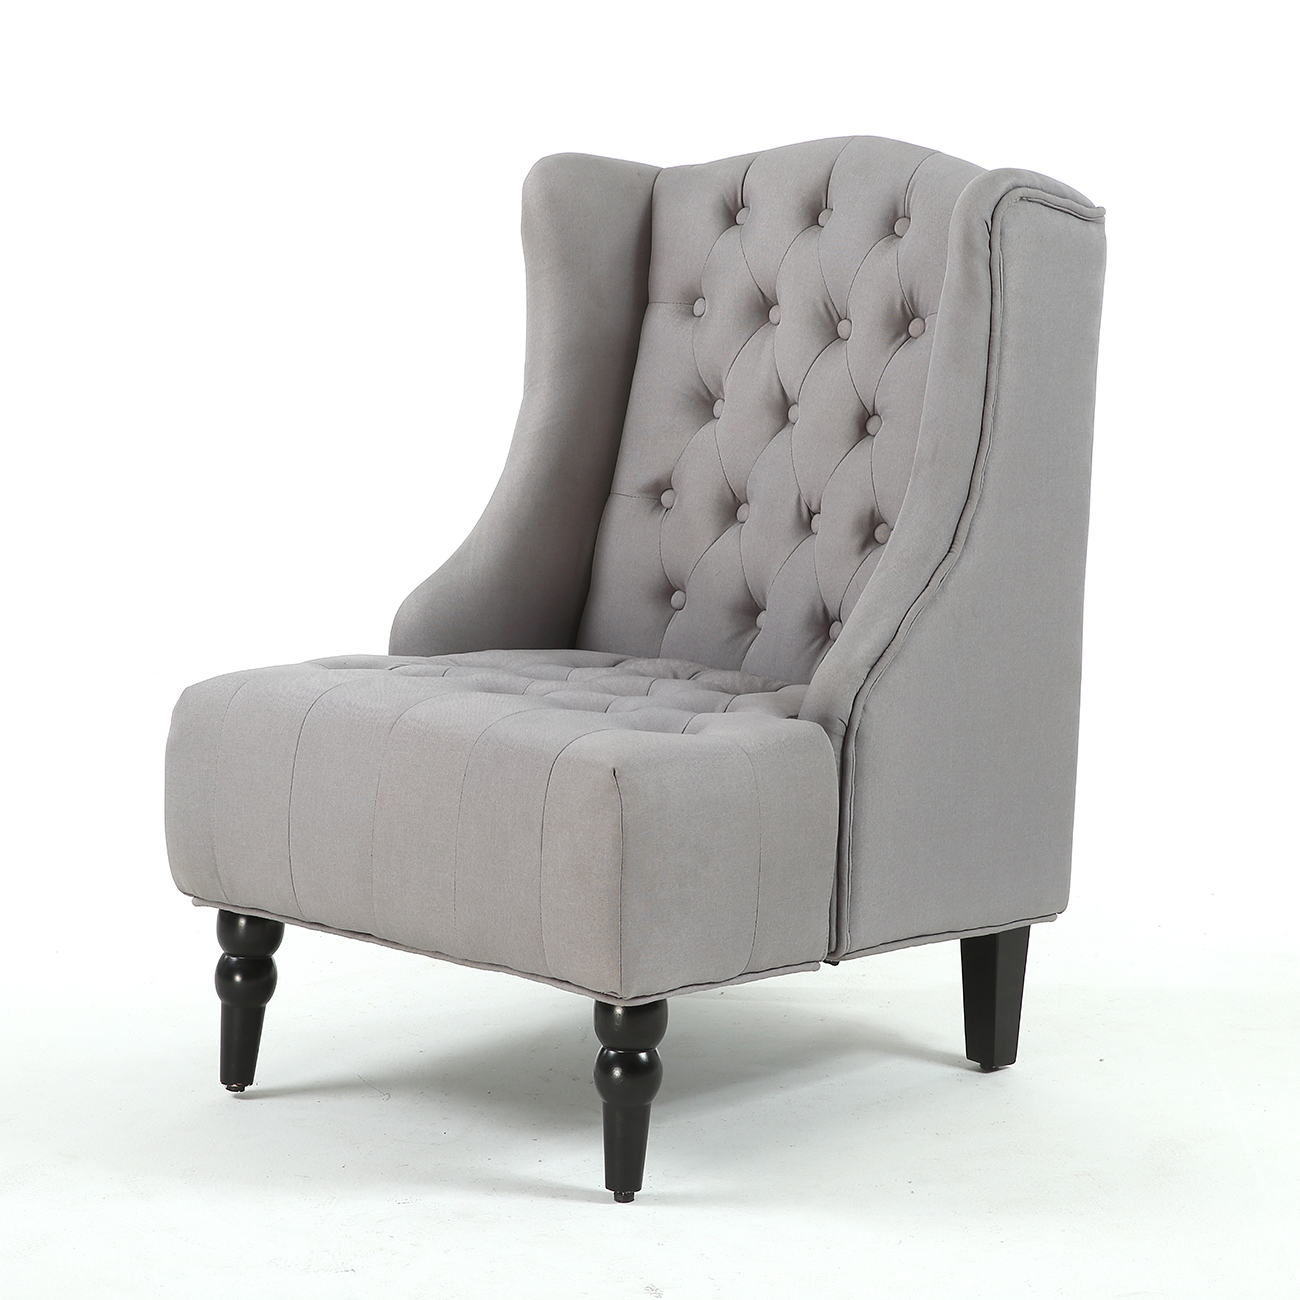 New modern wingback accent chair diamond tufted linen Tufted accent chair